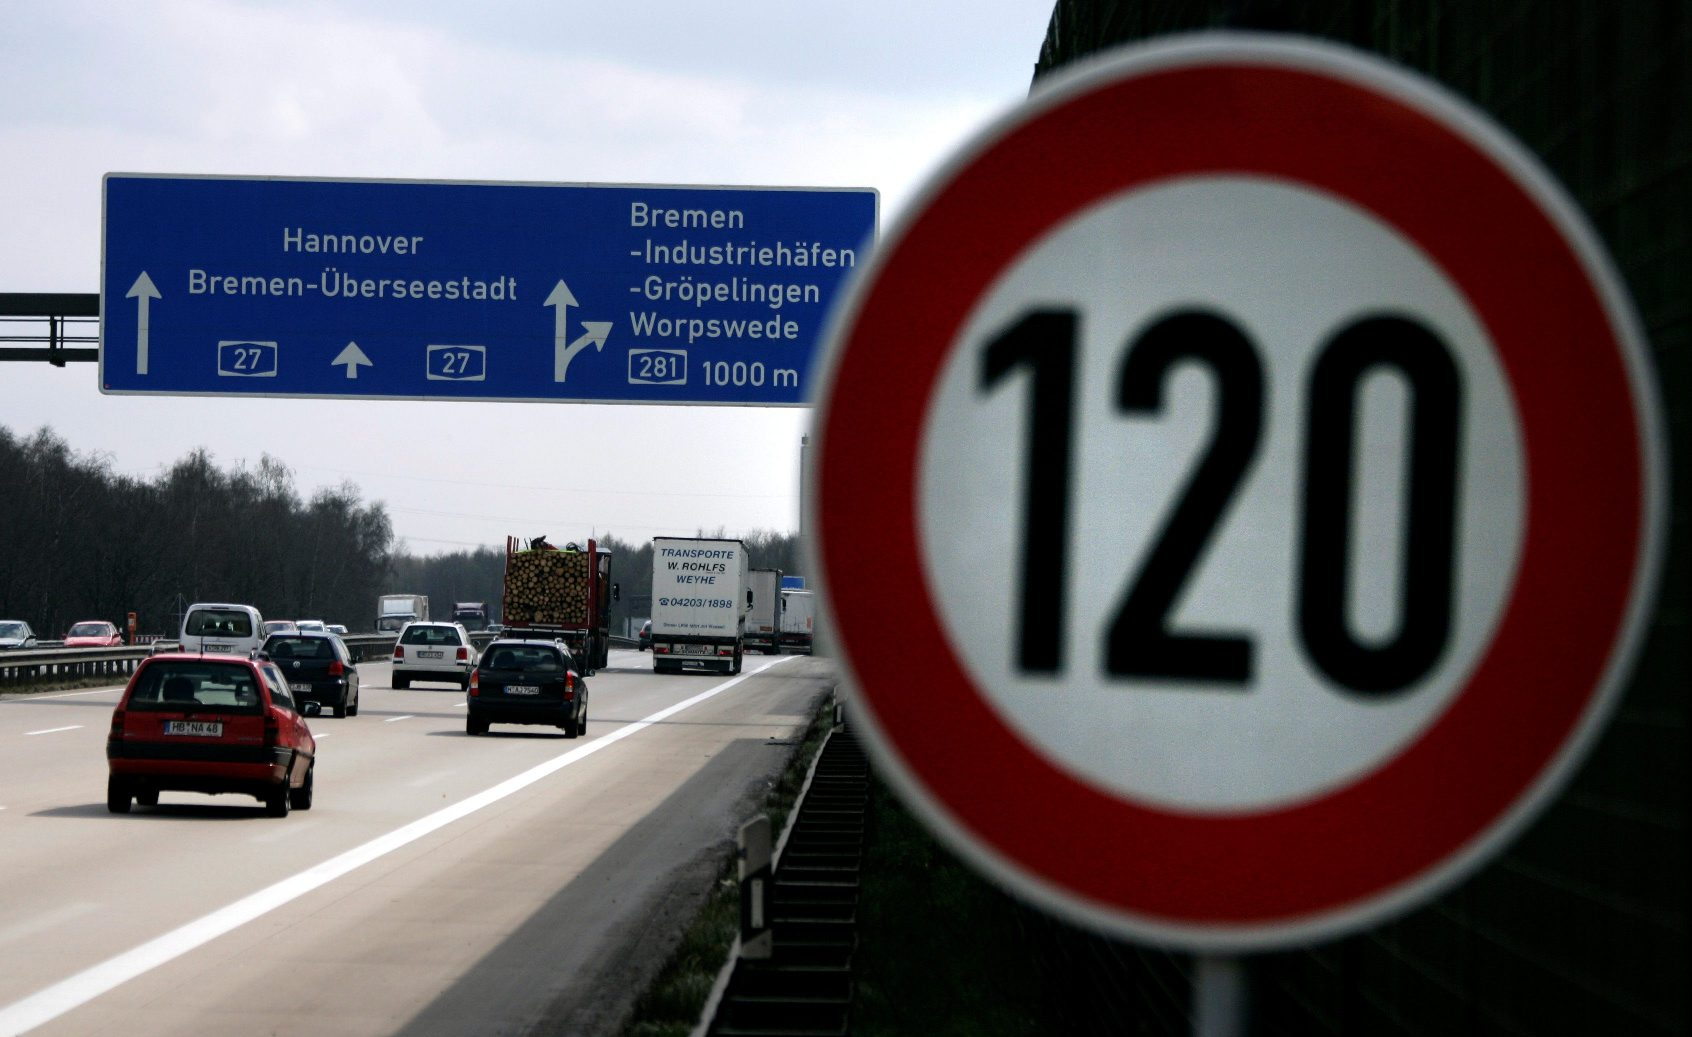 2019-01-18T130640Z_1400846762_RC125193DB80_RTRMADP_3_GERMANY-CLIMATE-TRANSPORT